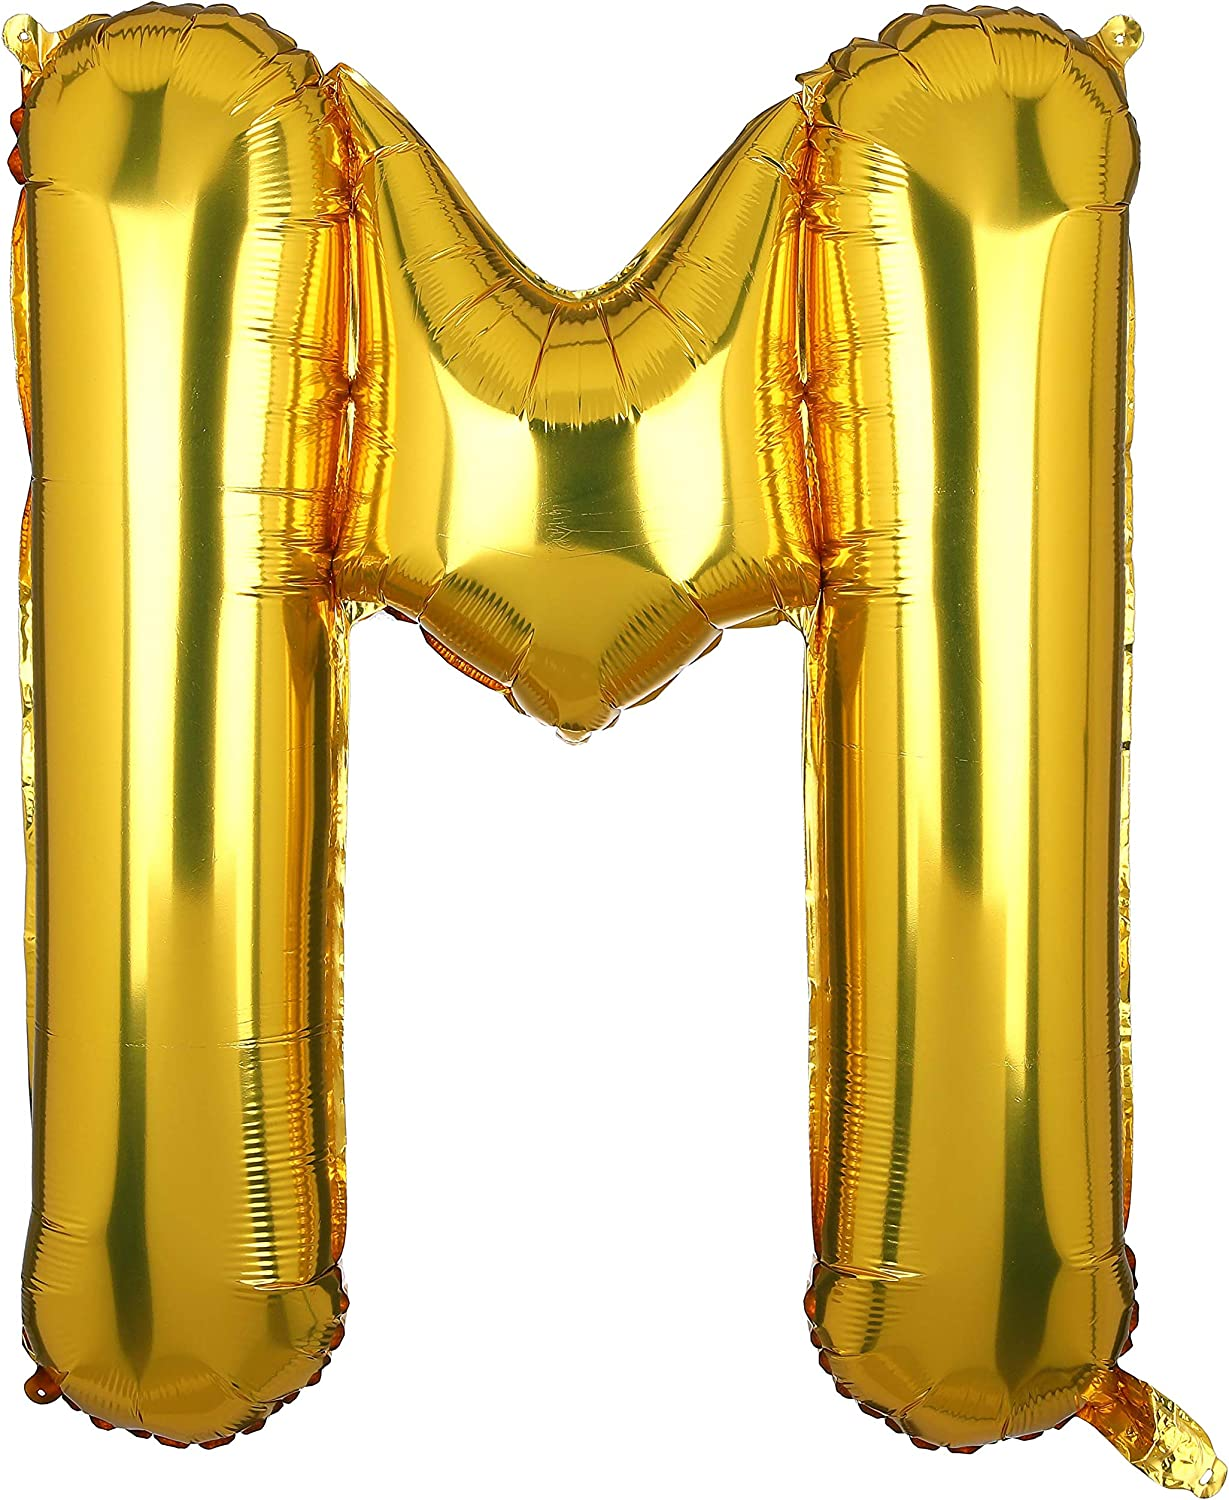 40 Inch Large Gold Letter M Foil Helium Balloons Big Mylar Balloon Birthday Party Decoration Supply Gold M